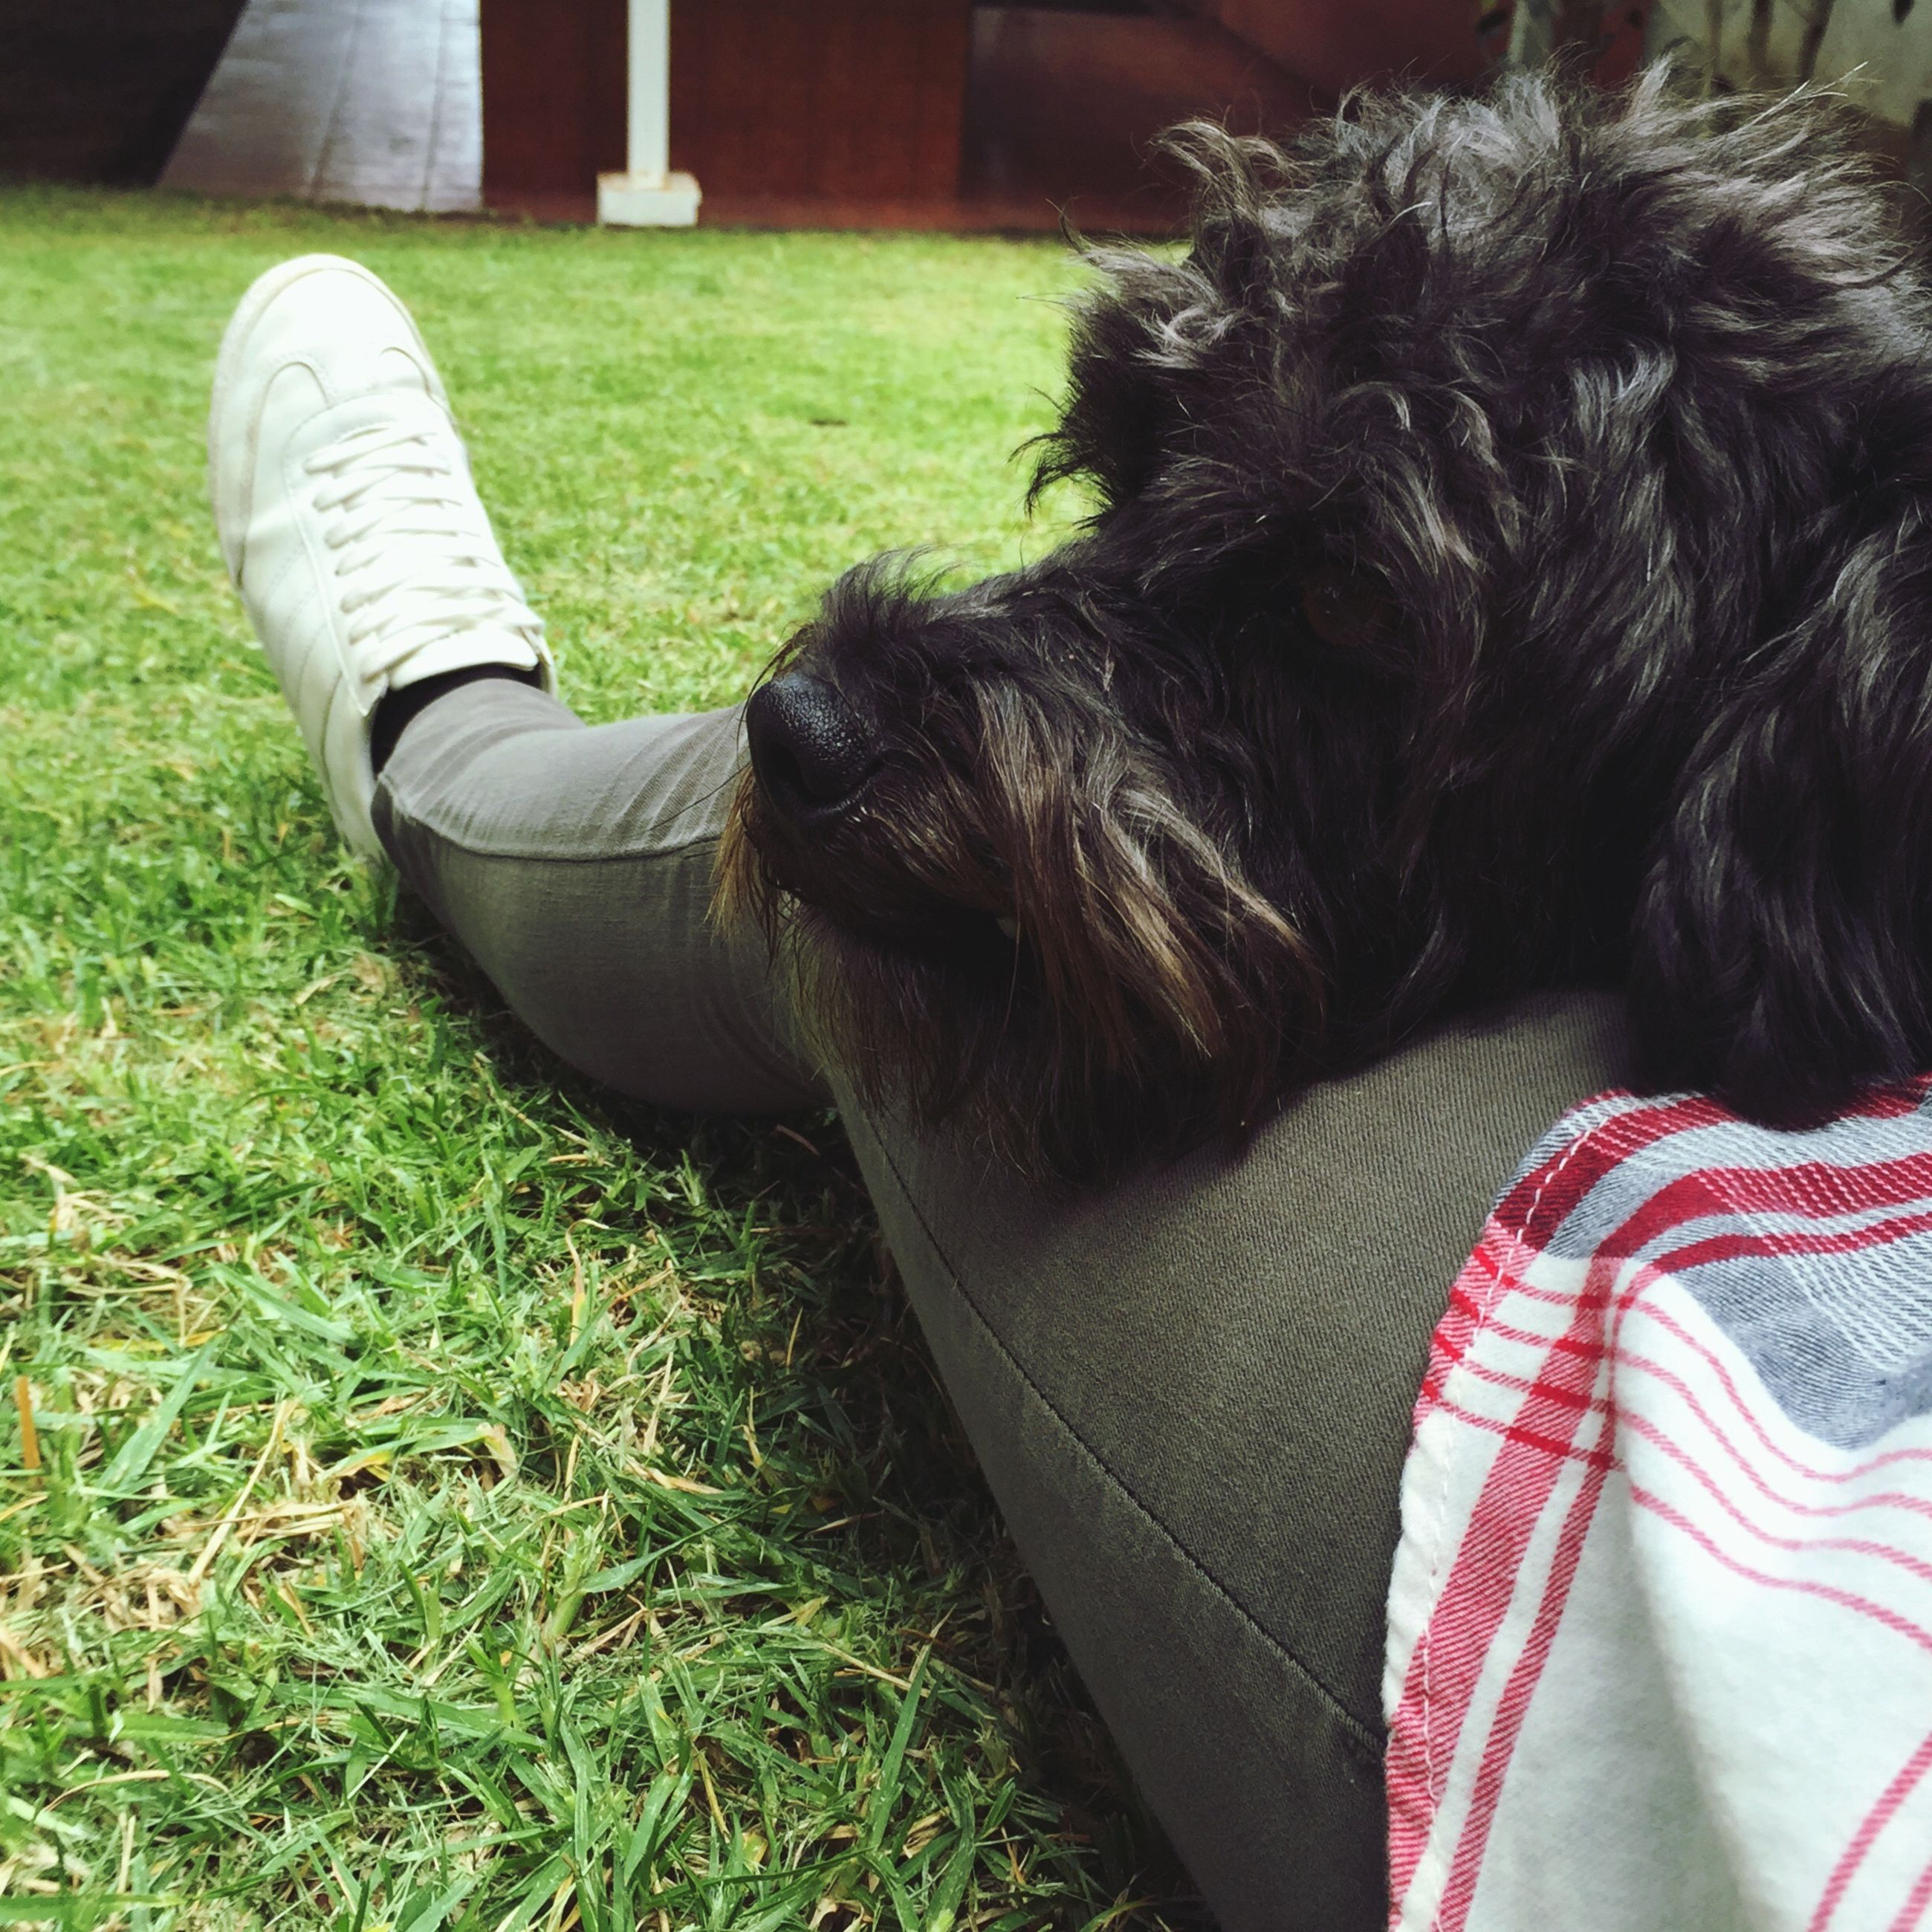 grass, domestic animals, dog, pets, one animal, relaxation, animal themes, mammal, resting, lying down, field, grassy, sleeping, lawn, relaxing, sitting, close-up, black color, day, no people